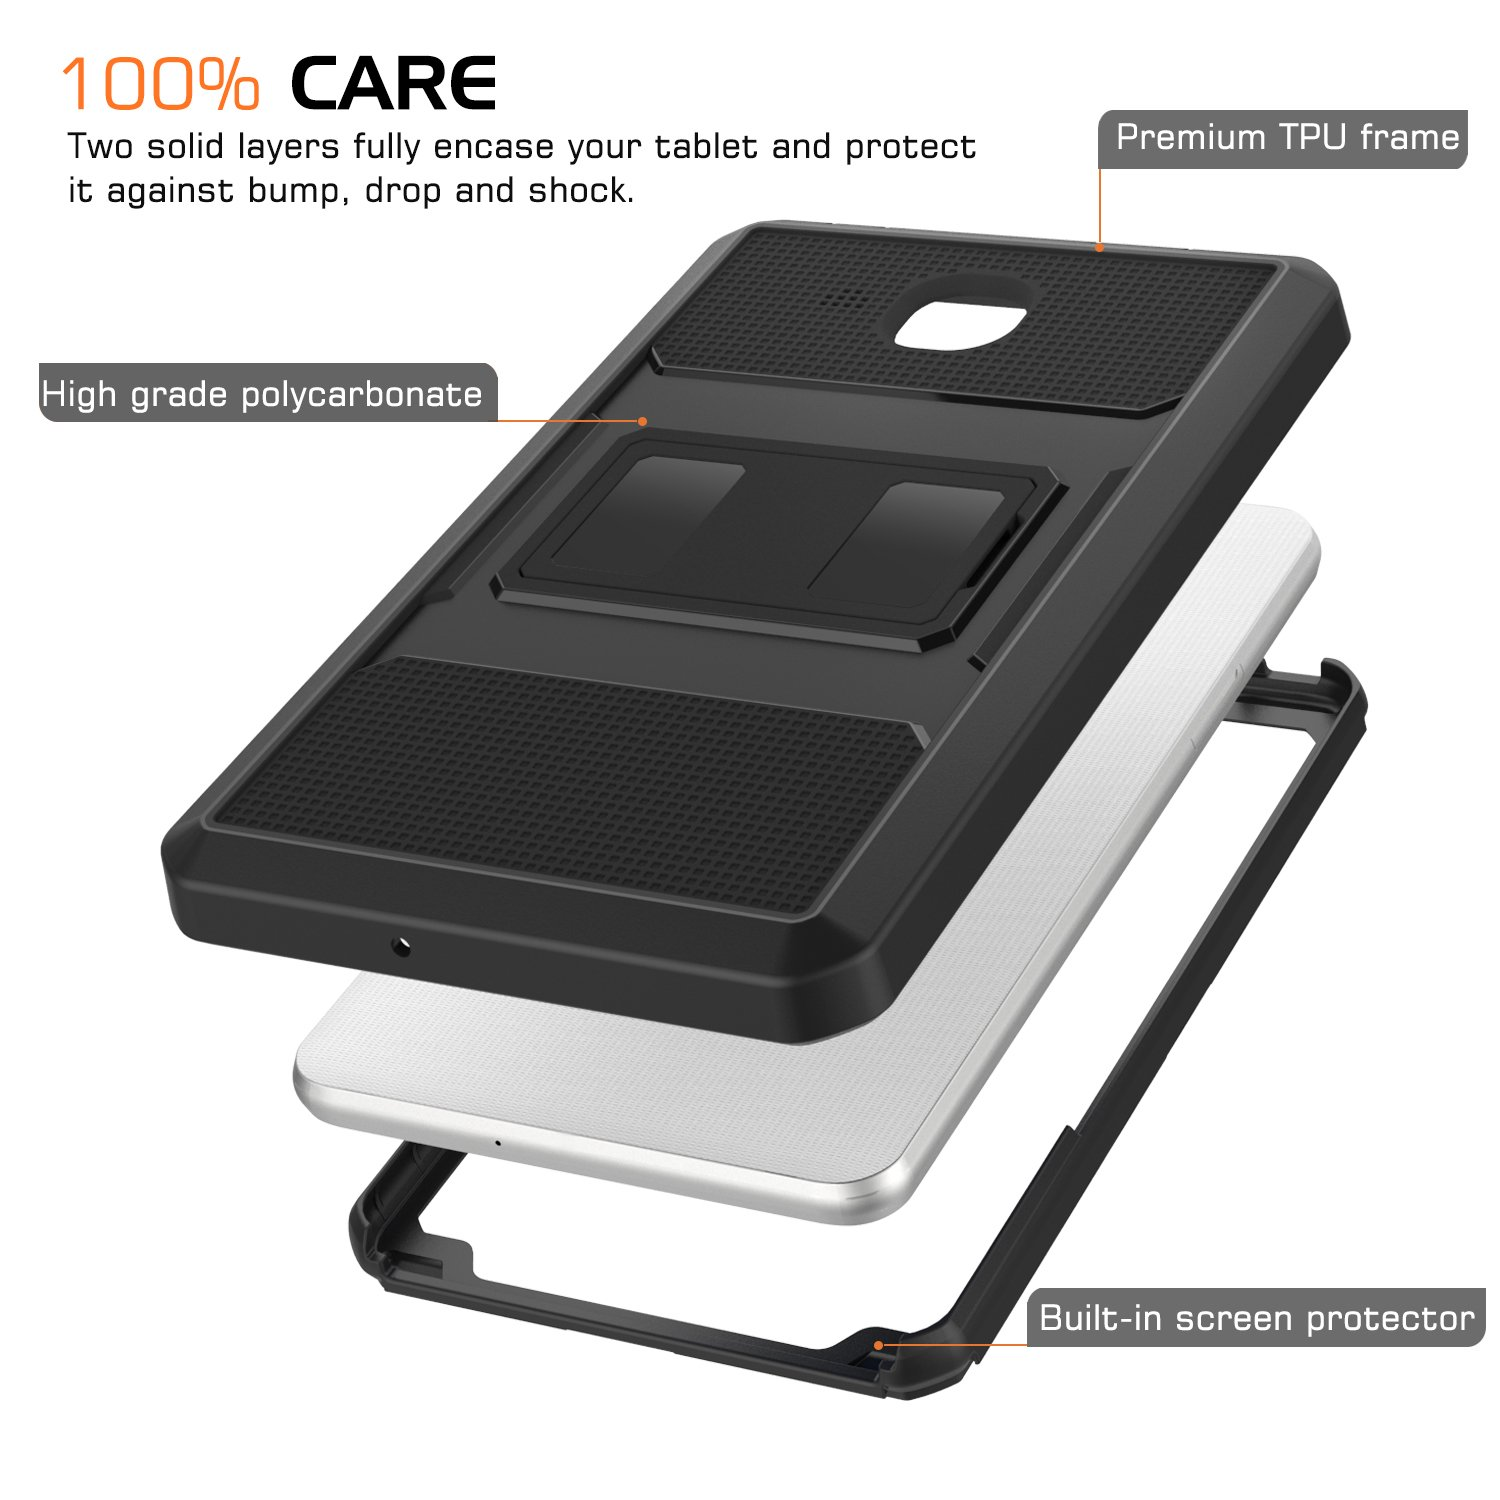 Moko Samsung Galaxy Tab A 70 Case Heavy Duty Full Body Rugged 2016 T285 Cover With Built In Screen Protector For Inch Tablet